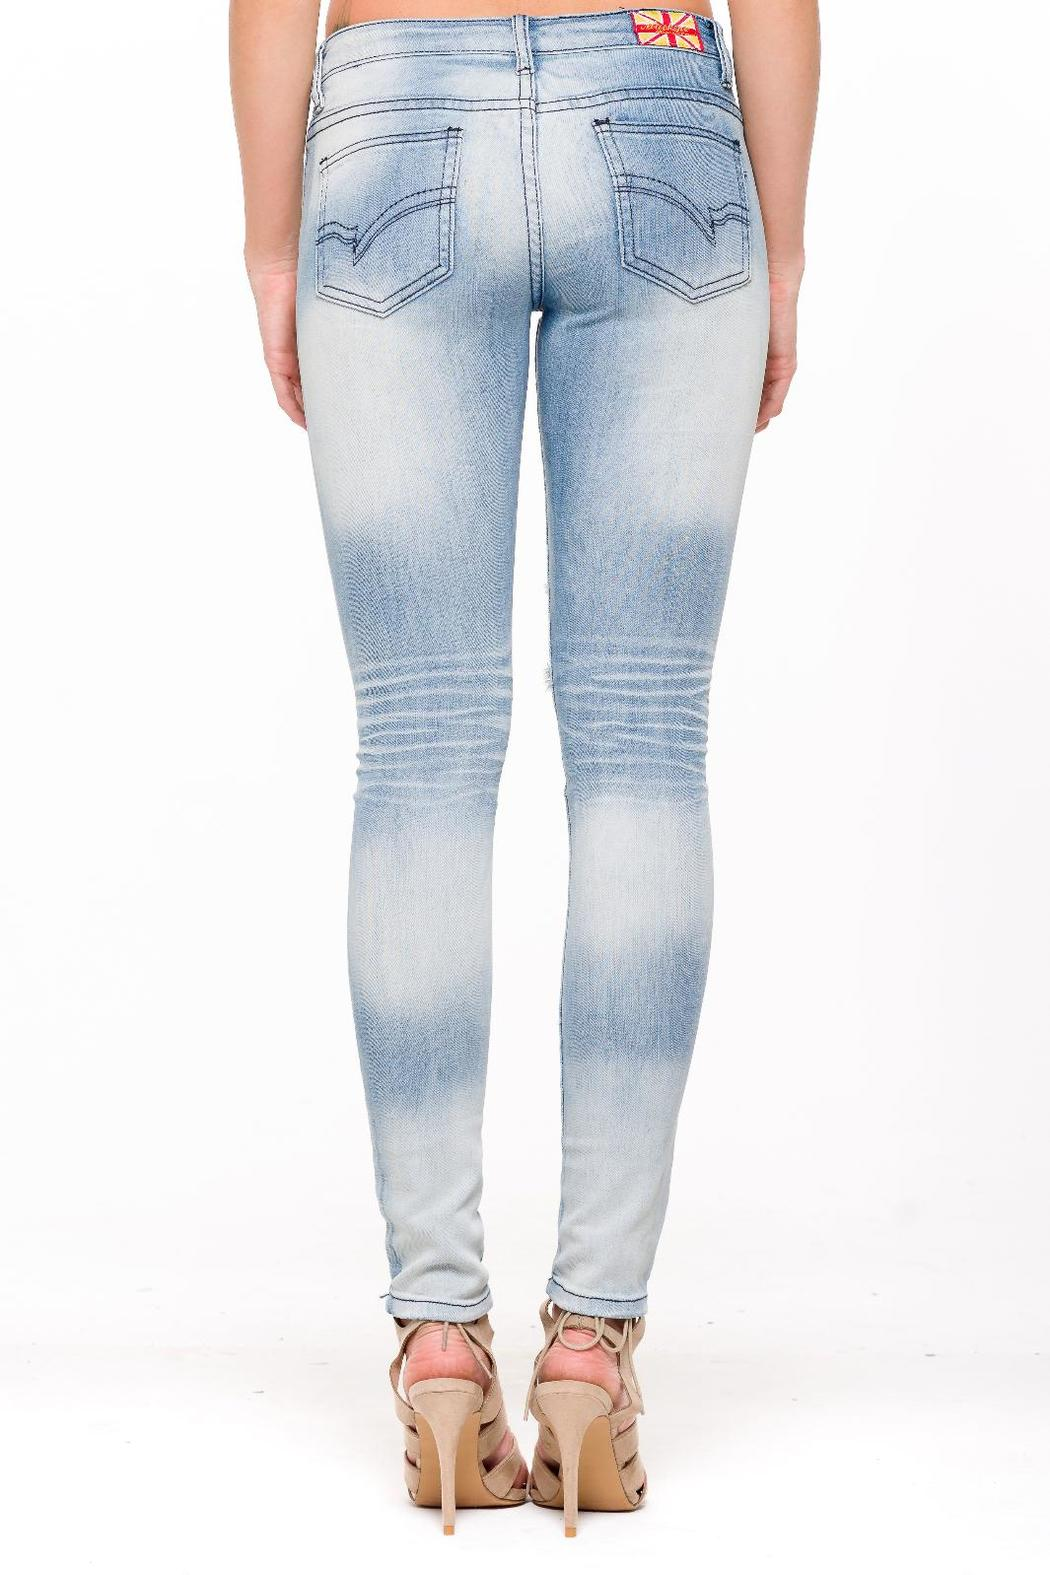 Machine Jeans Distressed Patched Jeans - Front Full Image